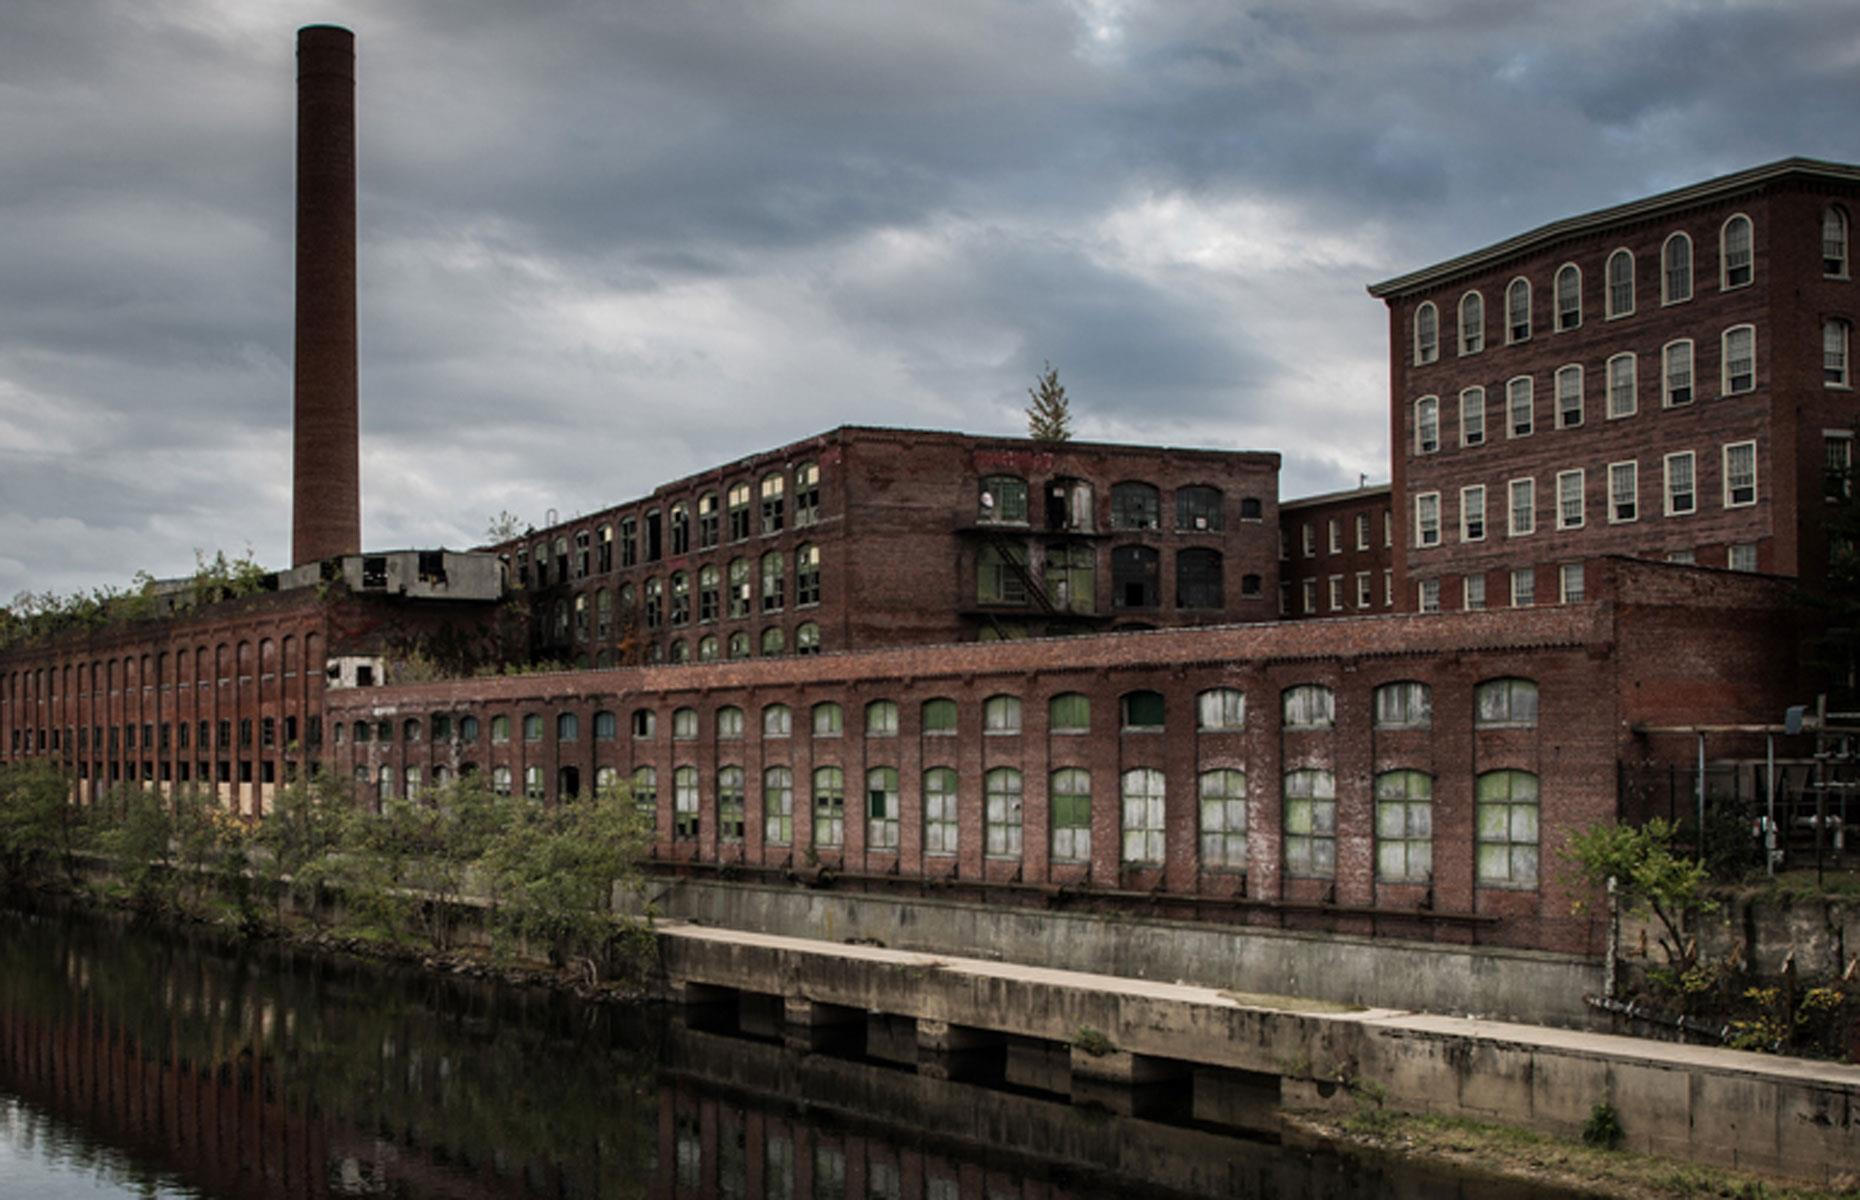 Slide 42 of 101: Famed for its many mills, Lowell is regarded as the birthplace of the Industrial Revolution in America, and was the first real factory town in the US. Founded in the 1820s, it fast became the country's most important center for textile manufacturing.